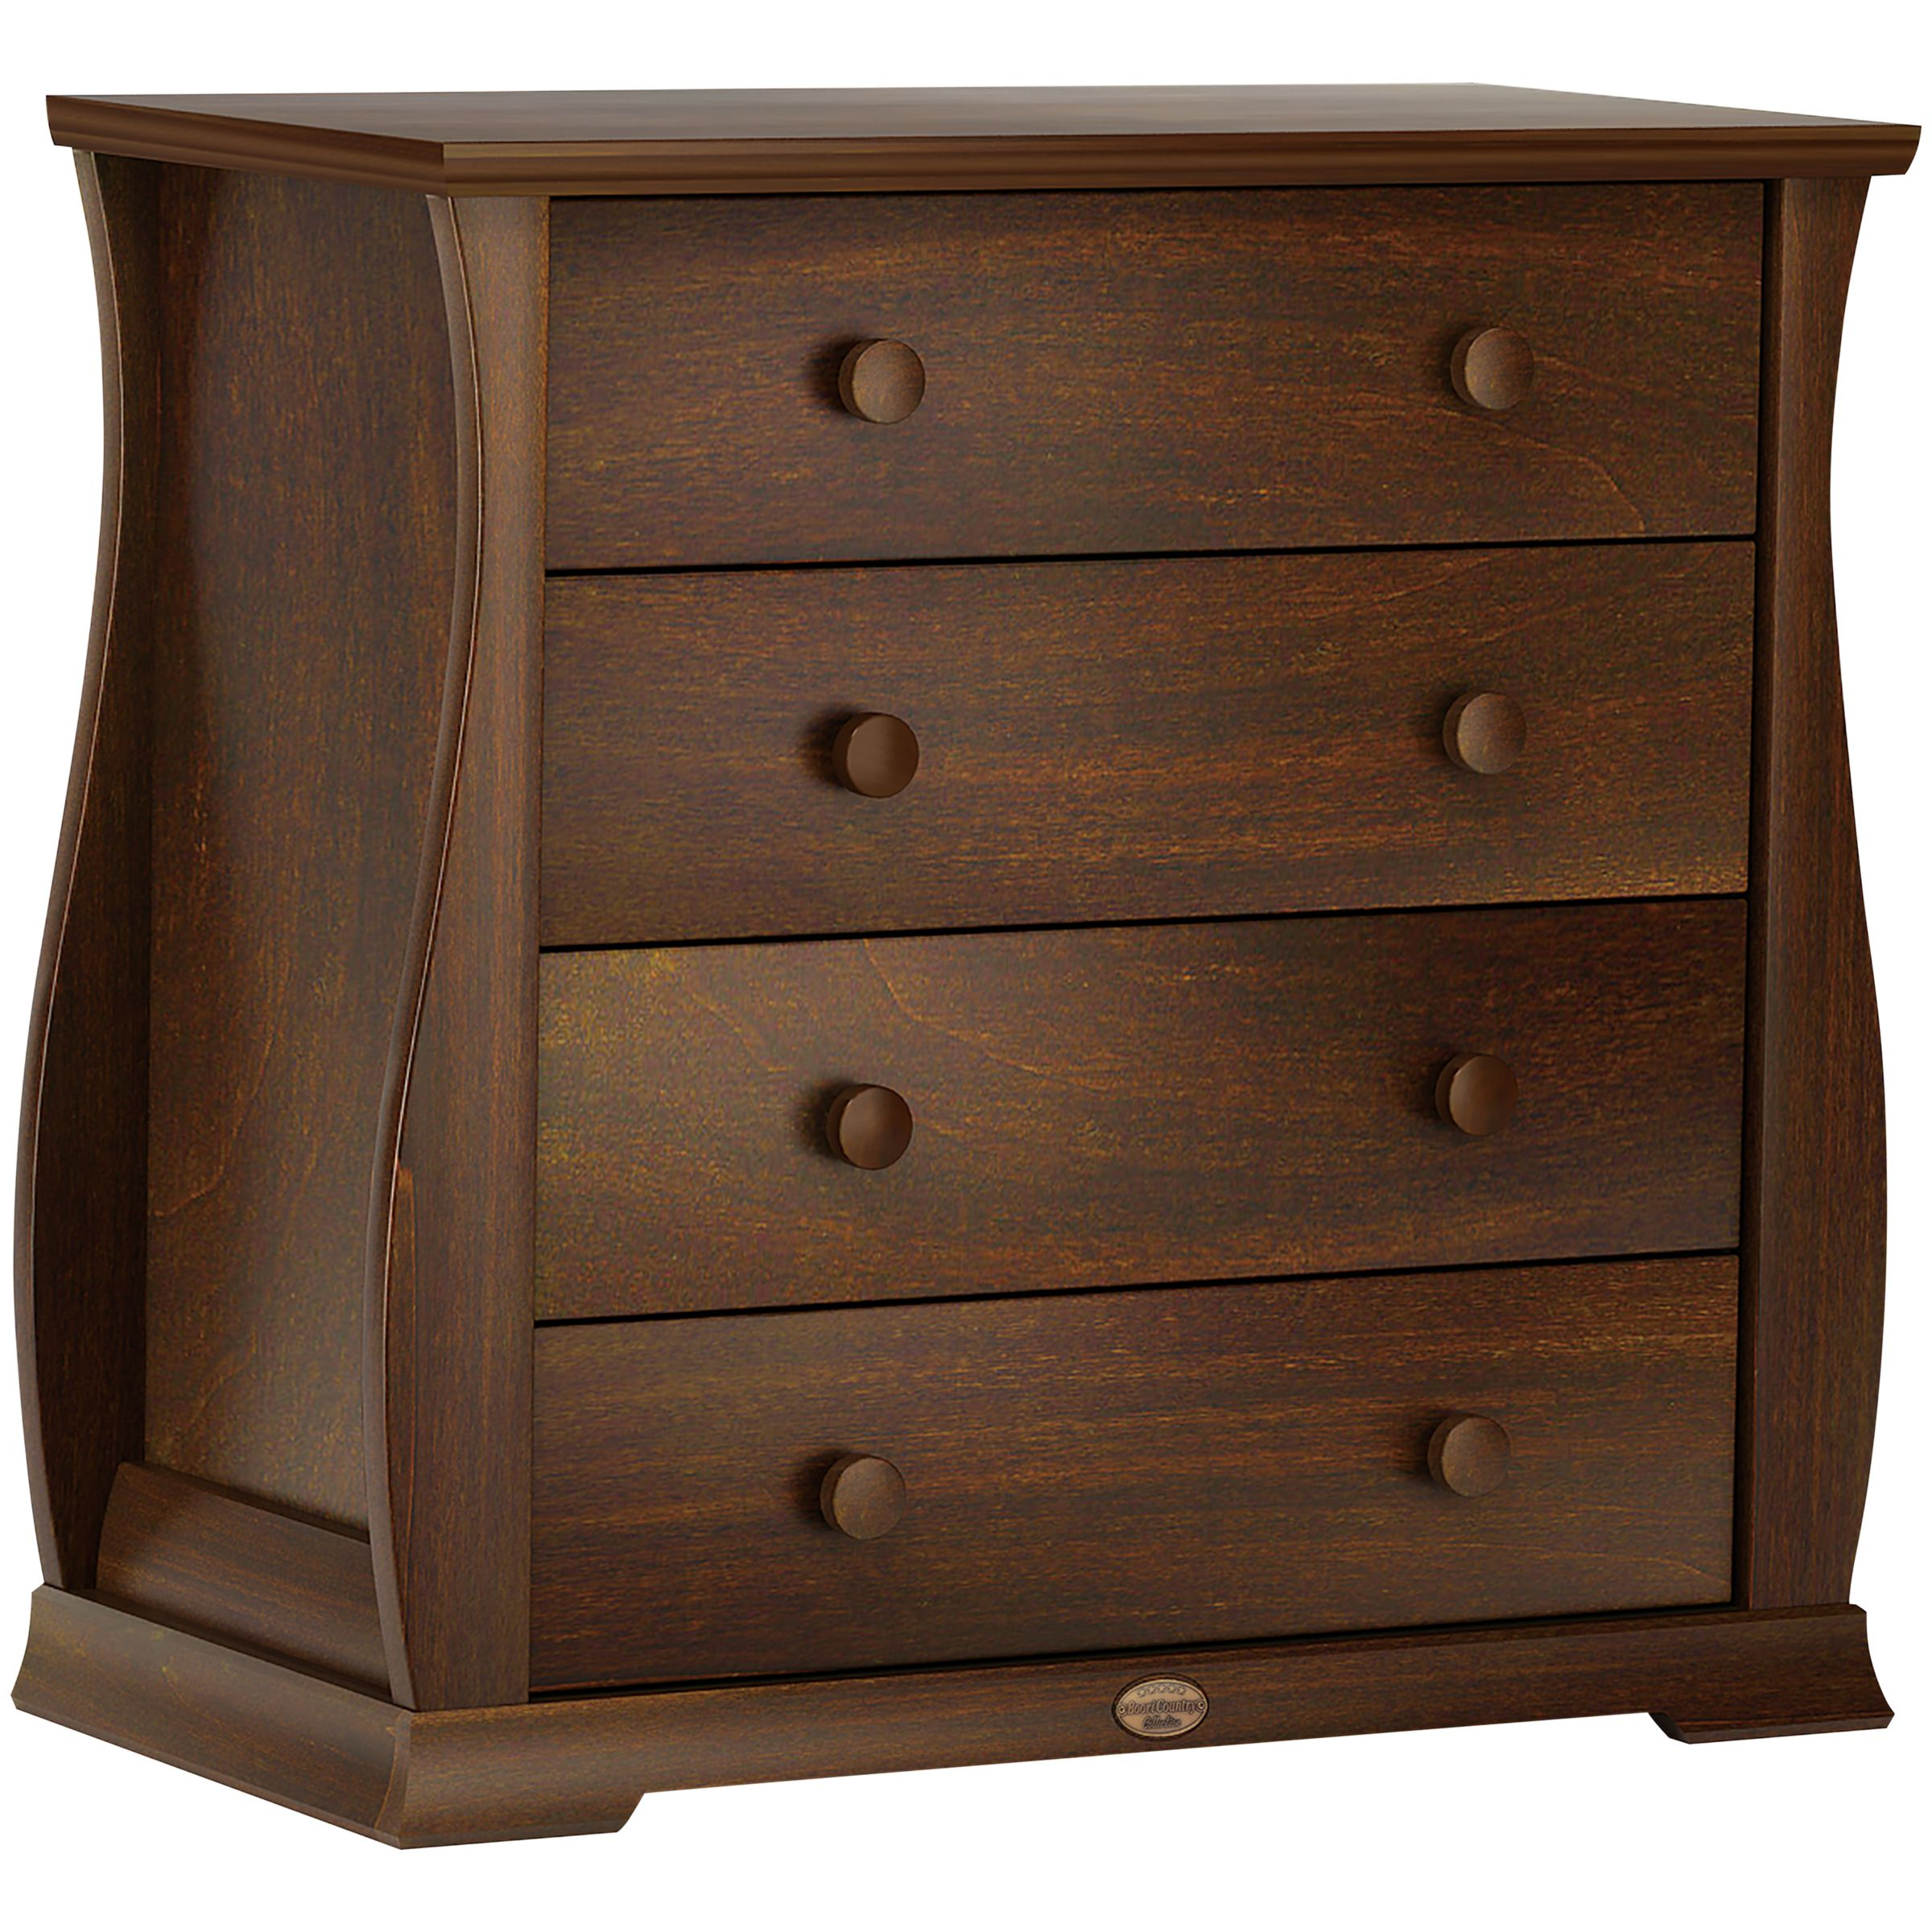 Sleigh 4 Drawer Chest, English Oak